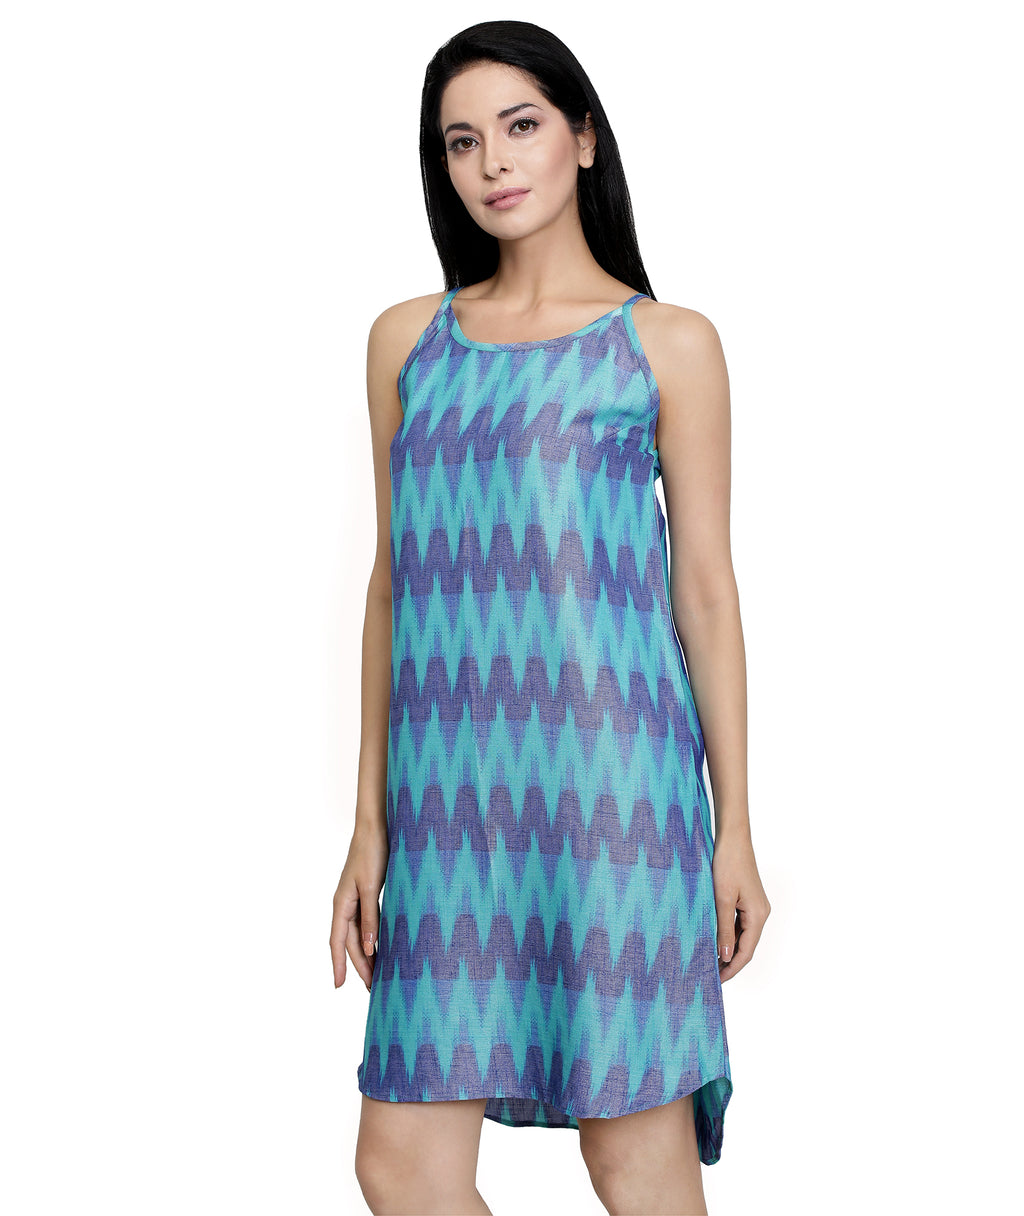 Aqua Ikat Beach Dress